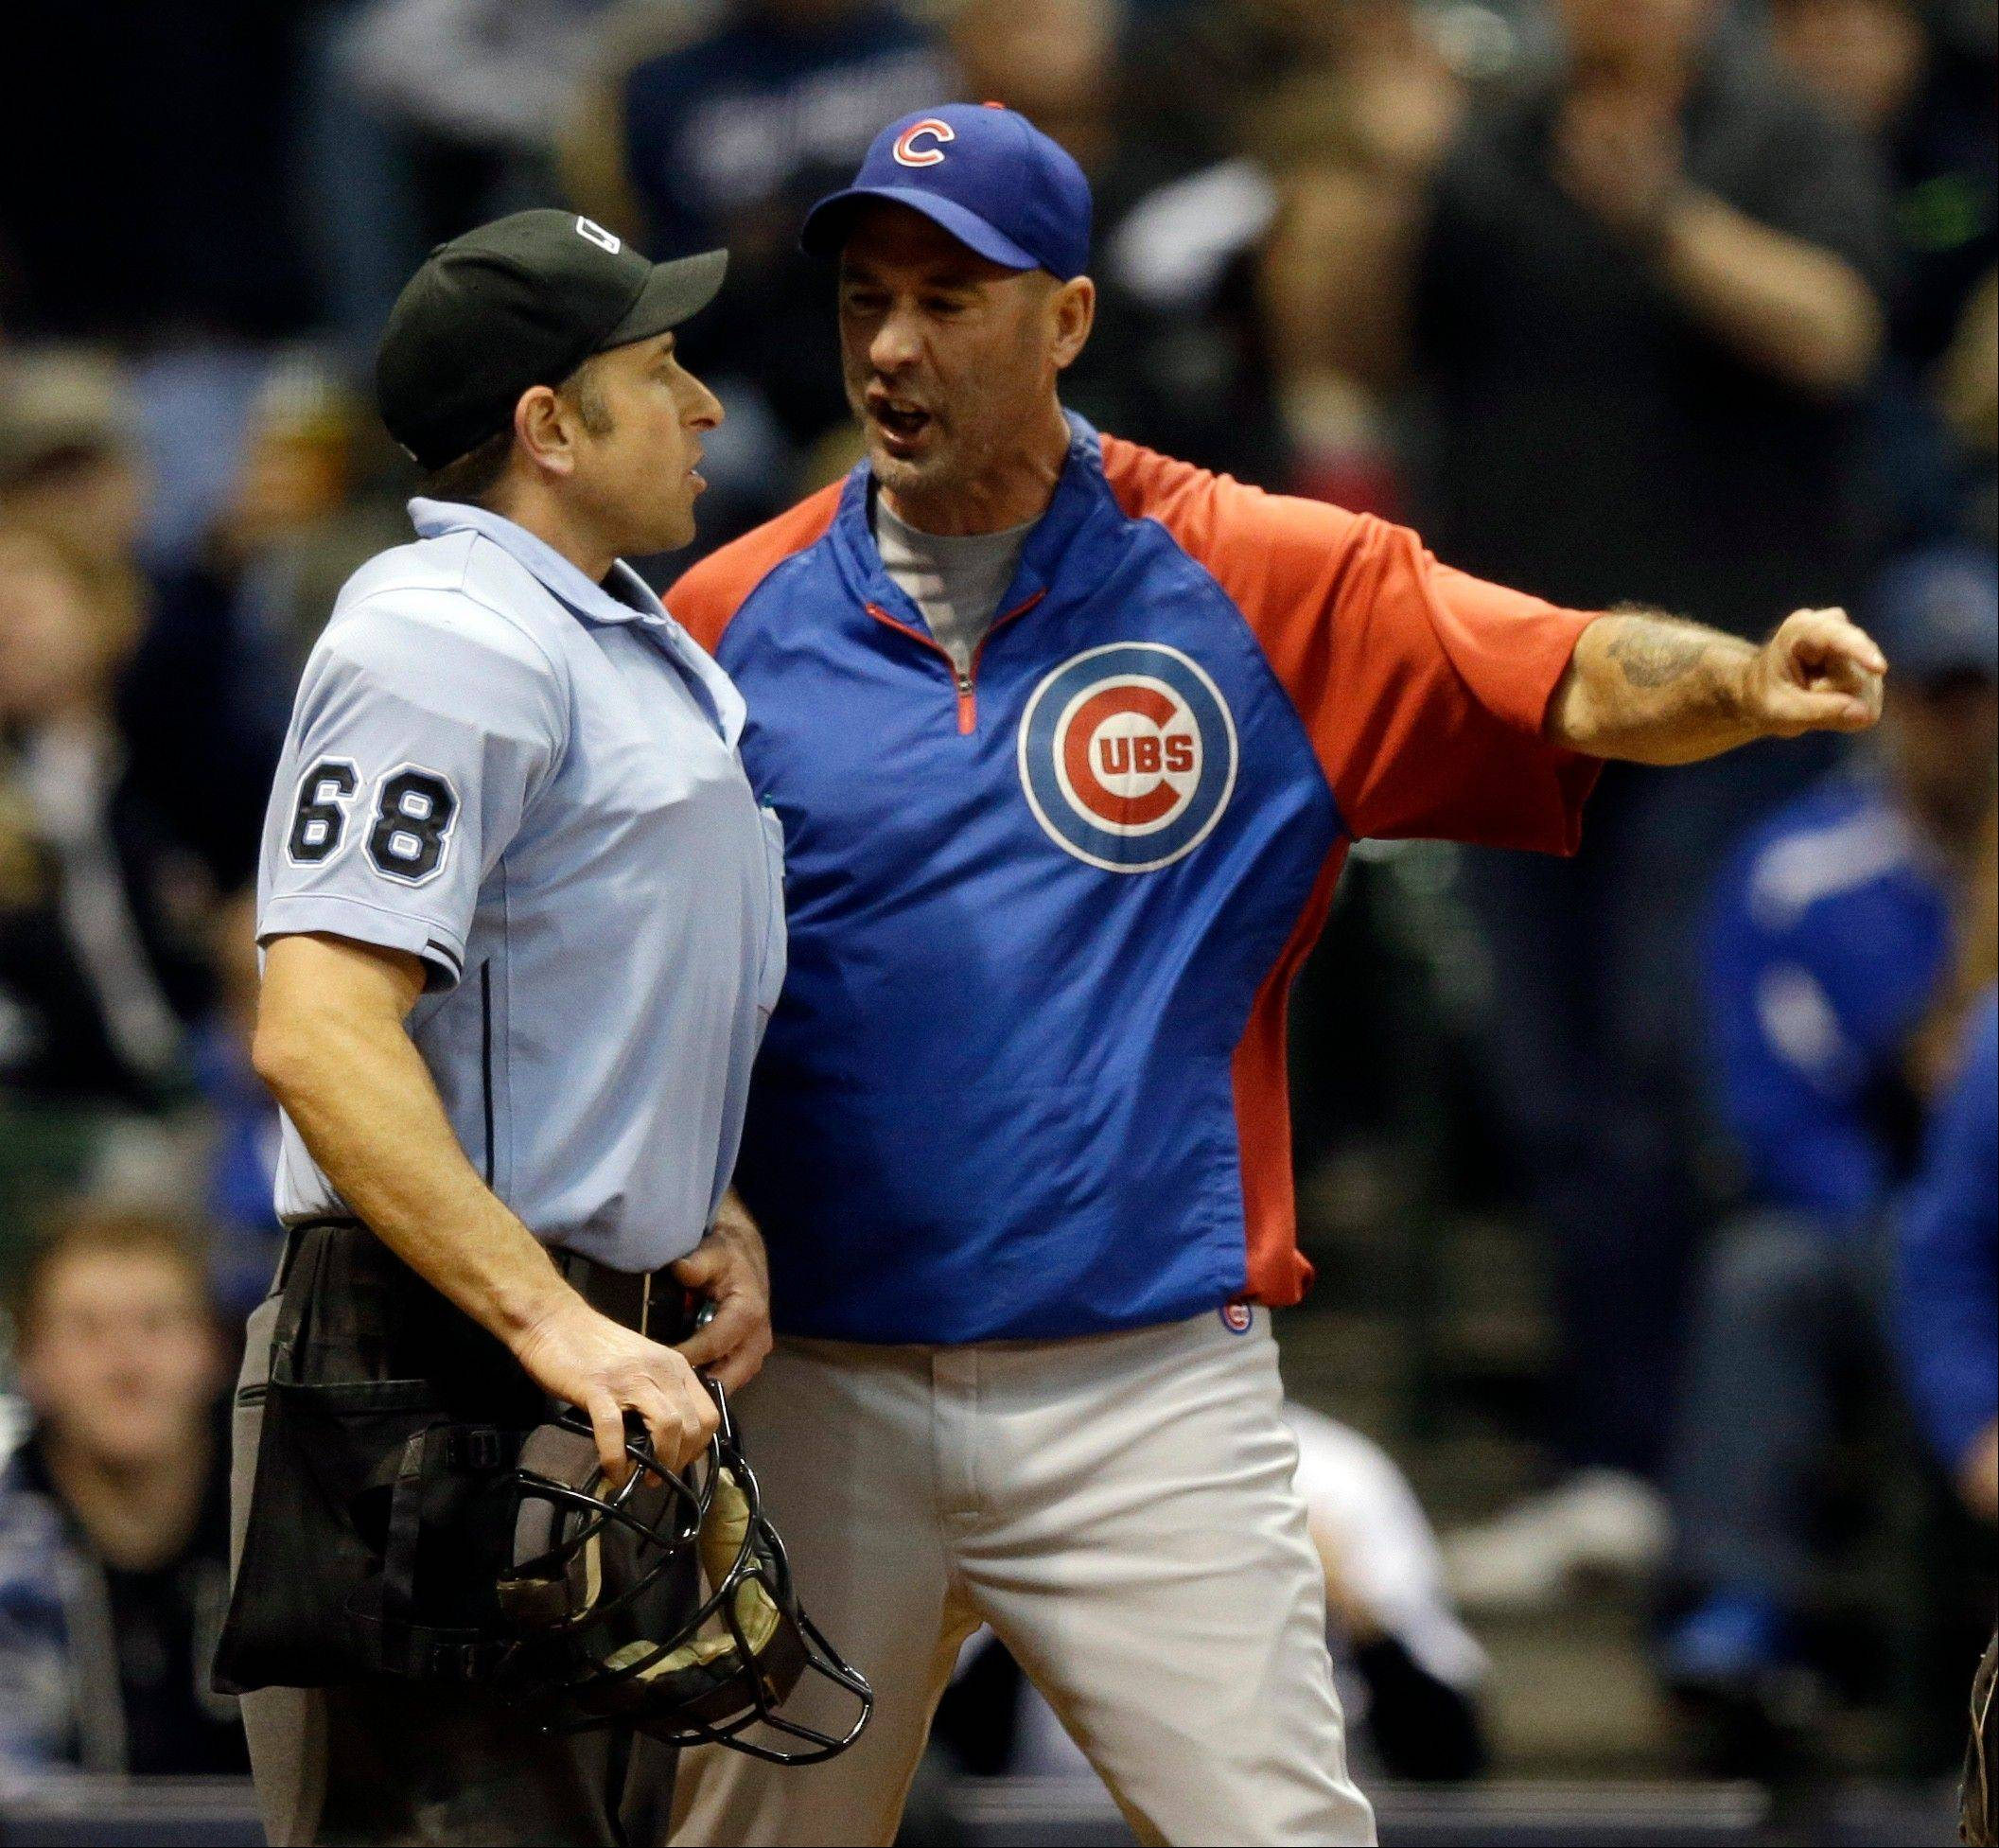 Chicago Cubs manager Dale Sveum argues with home plate umpire Chris Guccione during the sixth inning of Friday's road game against the Milwaukee Brewers. Sveum was ejected from the game.